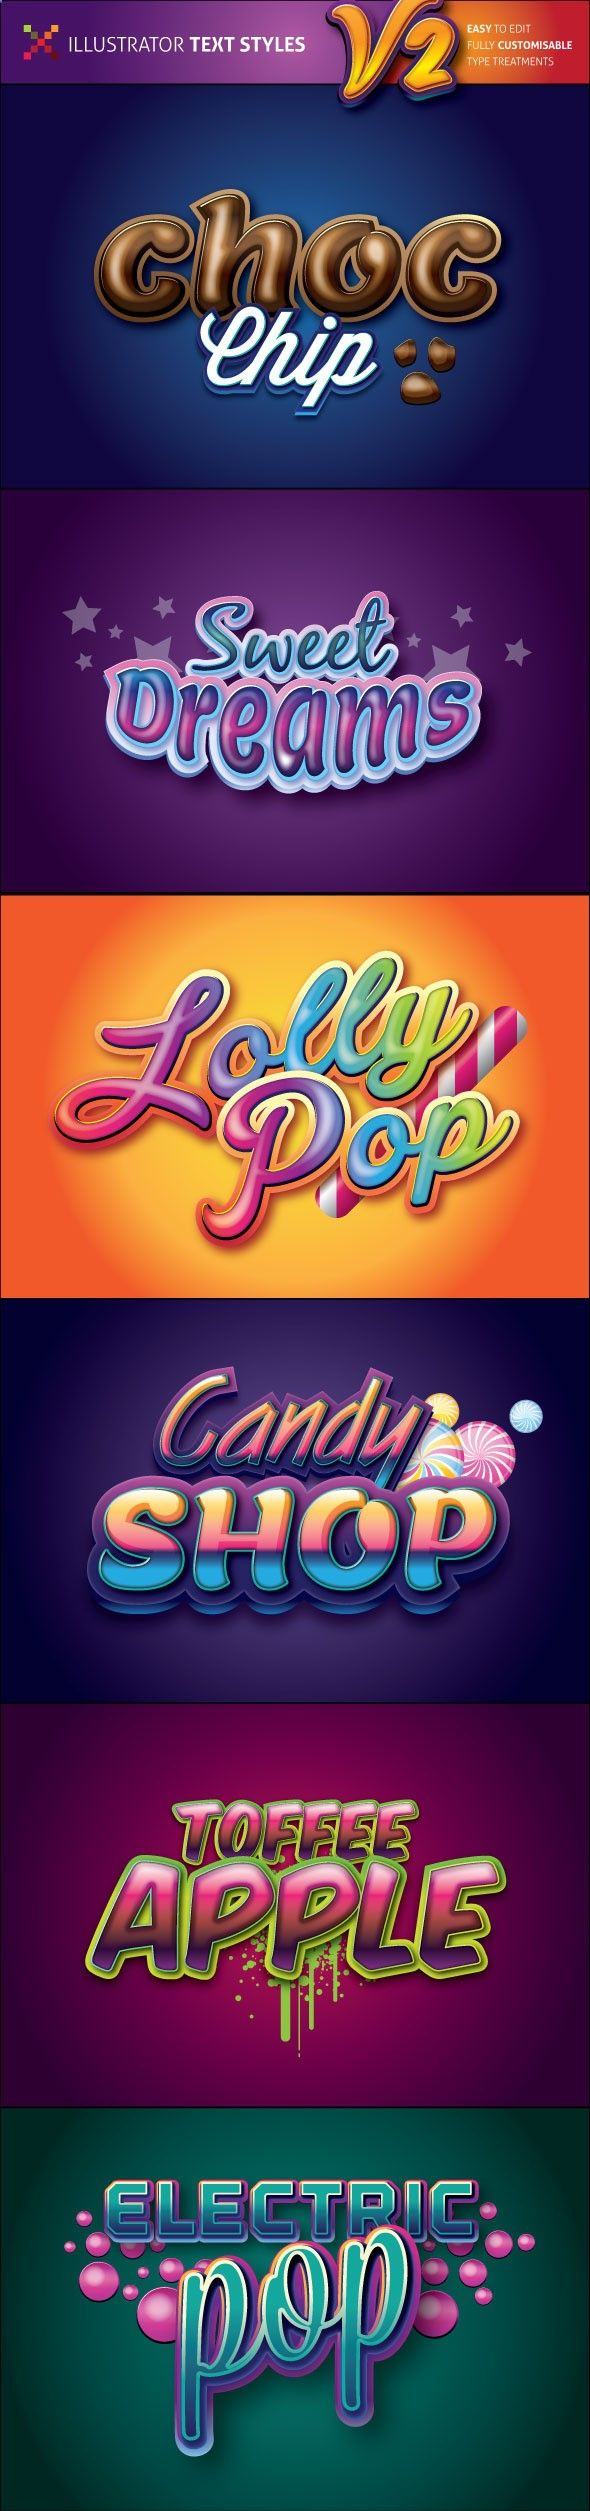 Below are two different file formats of the superman logo in a beveled - Sweet Illustrator Graphic Styles V2 Ai Illustrator Cmyk Cs6 3d Candy